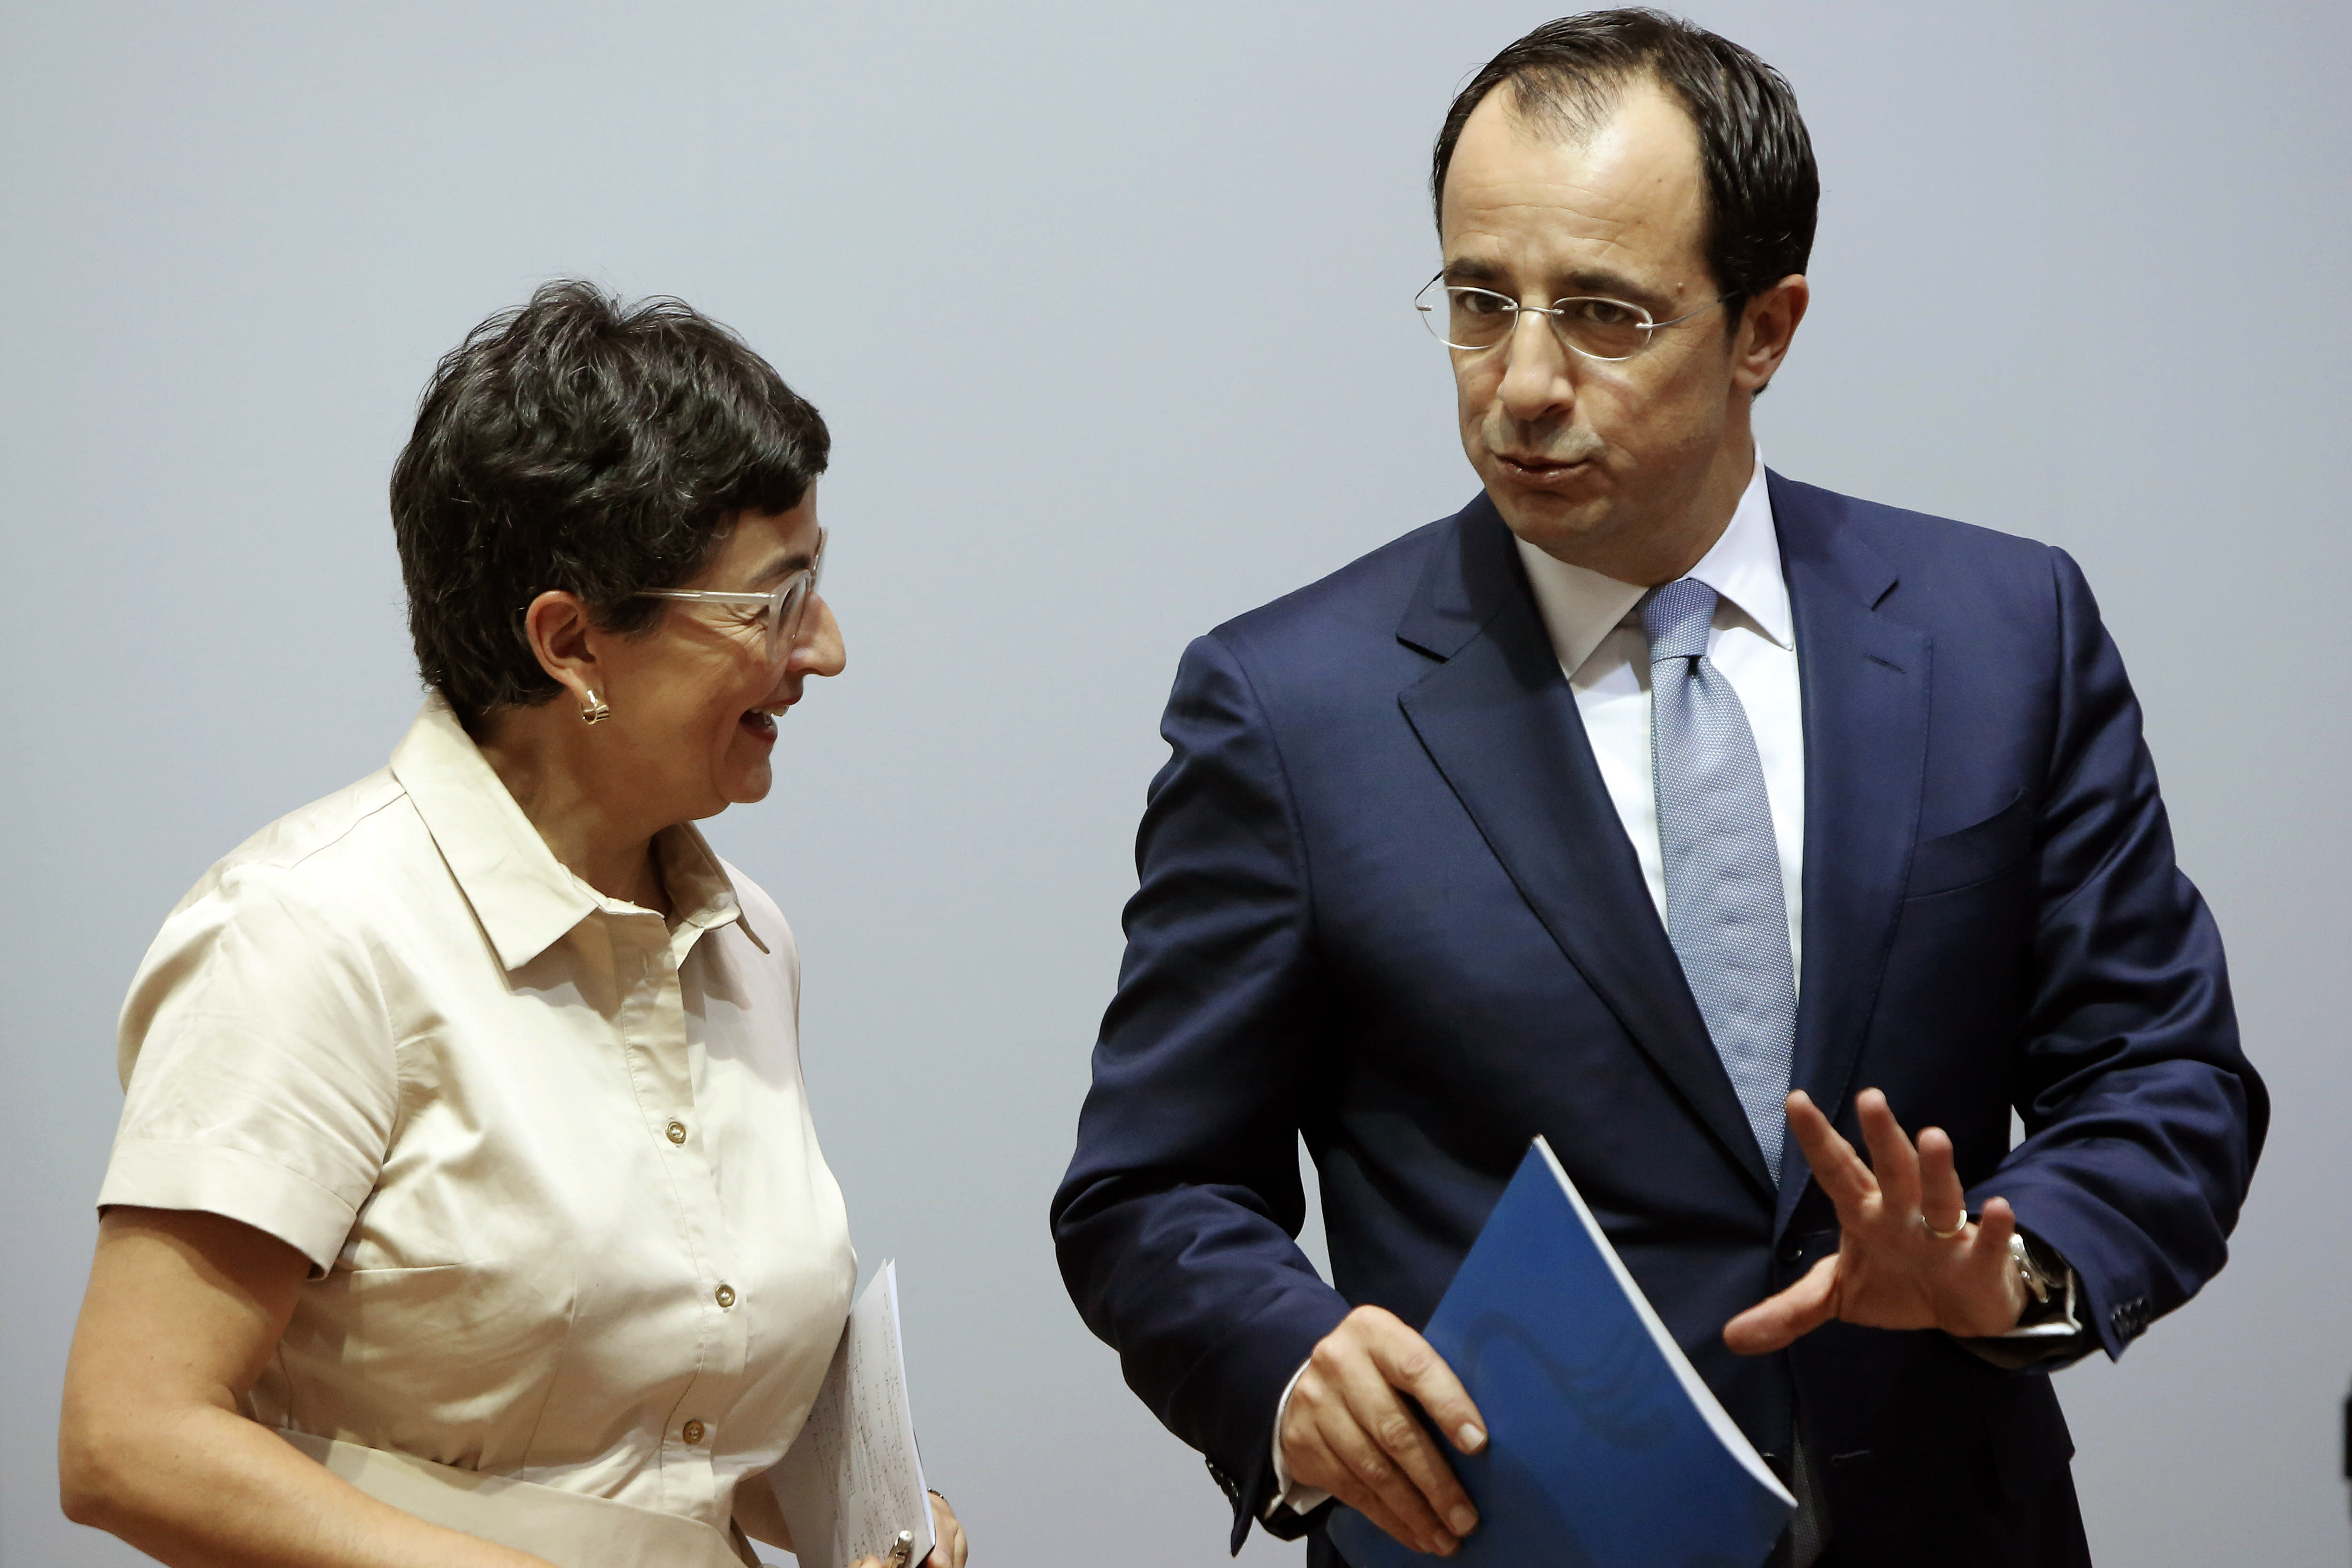 Spain's Foreign Minister Arancha Gonzalez Laya, left, with her Cypriot countepart Nikos Christodoulides talk after a news conference at the Cypriot Foreign Ministry building in the capital Nicosia, Cyprus, on Wednesday, Sept. 30, 2020. Laya said her visit aimed to convey her country's solidarity with Cyprus amid tensions over a Turkish gas search in waters were Cyprus claims exclusive economic rights. (AP Photo/Petros Karadjias)